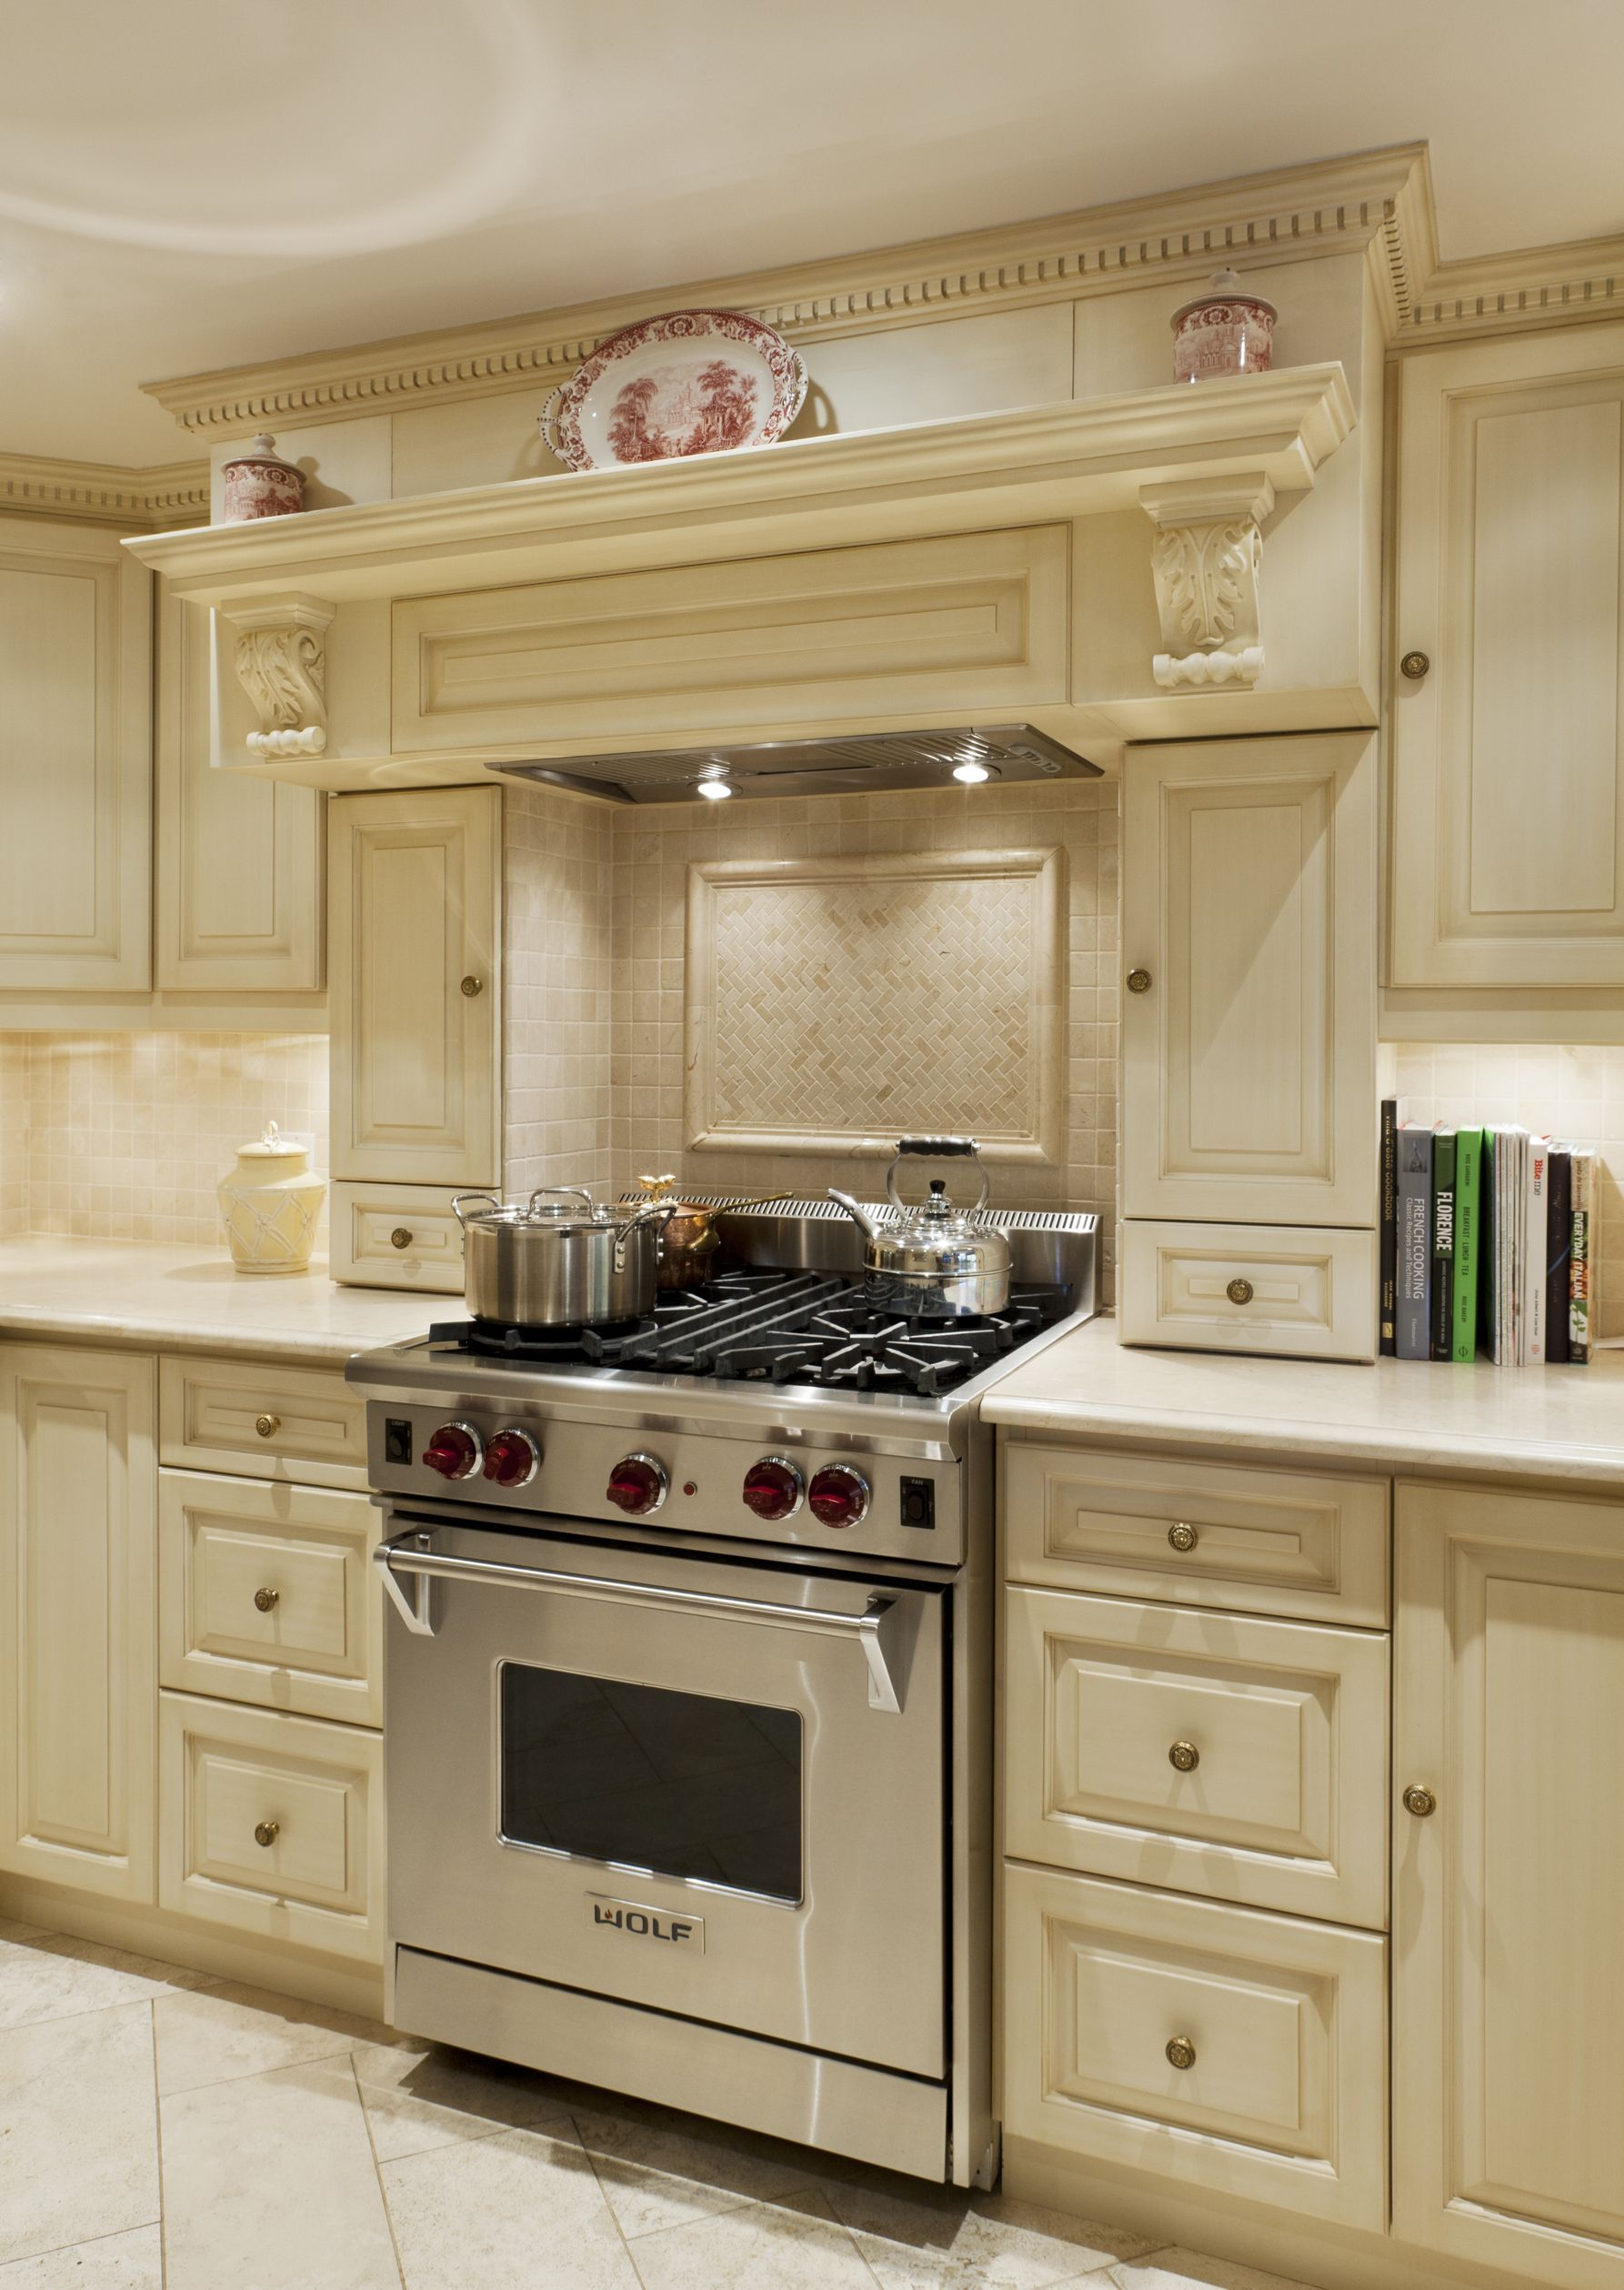 10 Unbelievable Small Kitchen Remodel Ranch Ideas